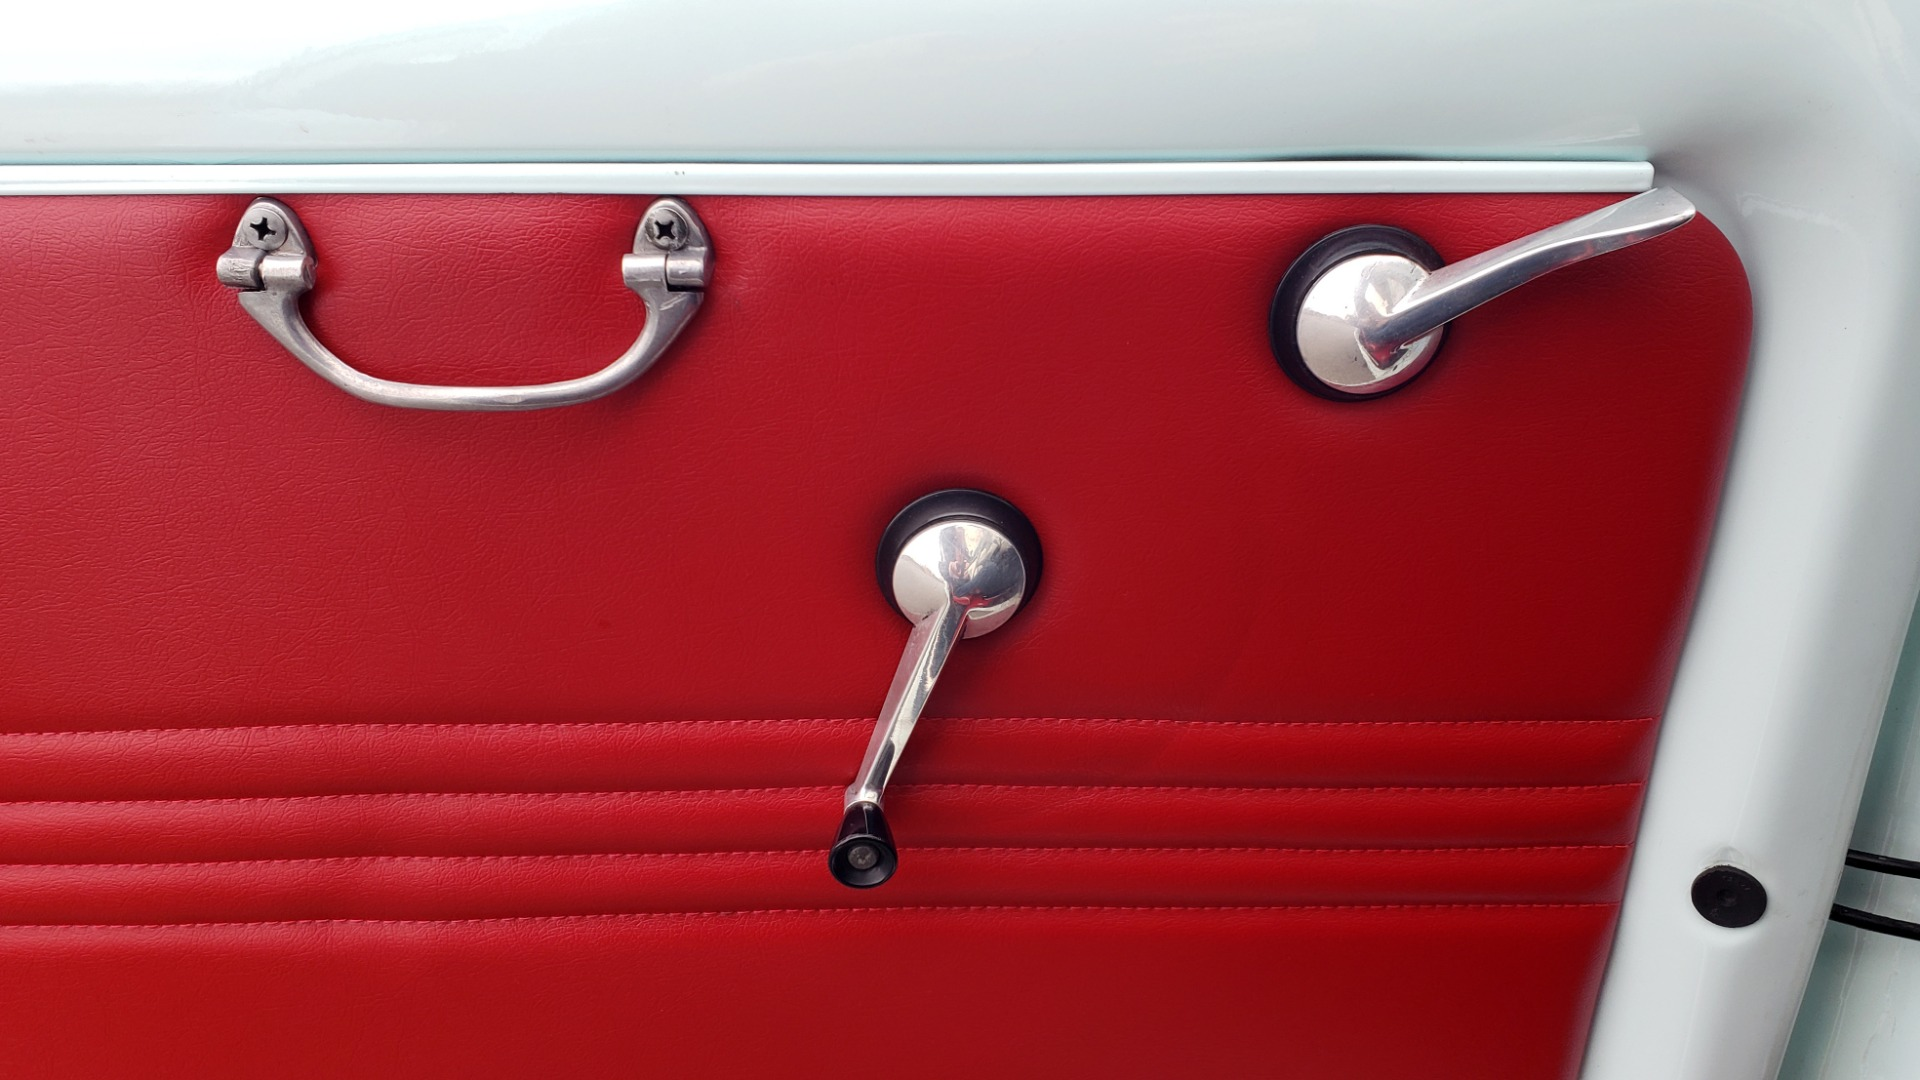 Used 1968 FIAT 500 NUOVA / SOFT-TOP / LUGGAGE RACK / RESTORED, LIKE NEW for sale $21,900 at Formula Imports in Charlotte NC 28227 24